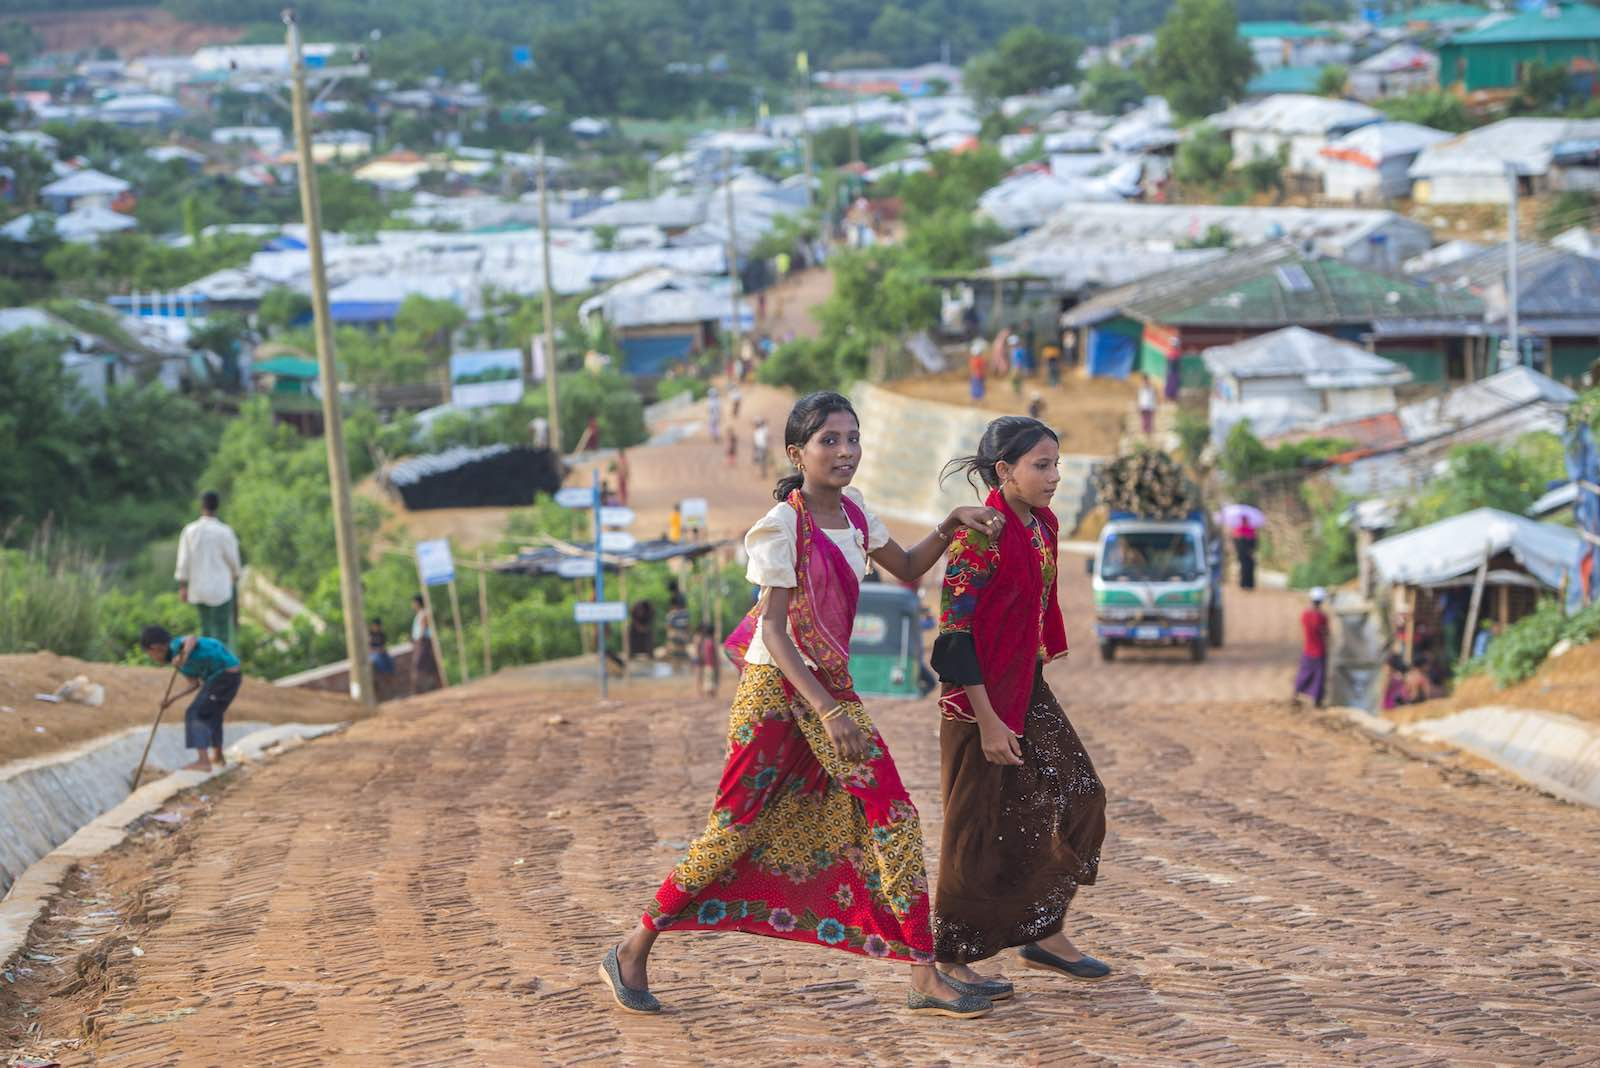 Sprawling camps around Cox's Bazar make up the world's largest refugee settlement (Photo: Peter Biro/European Union)